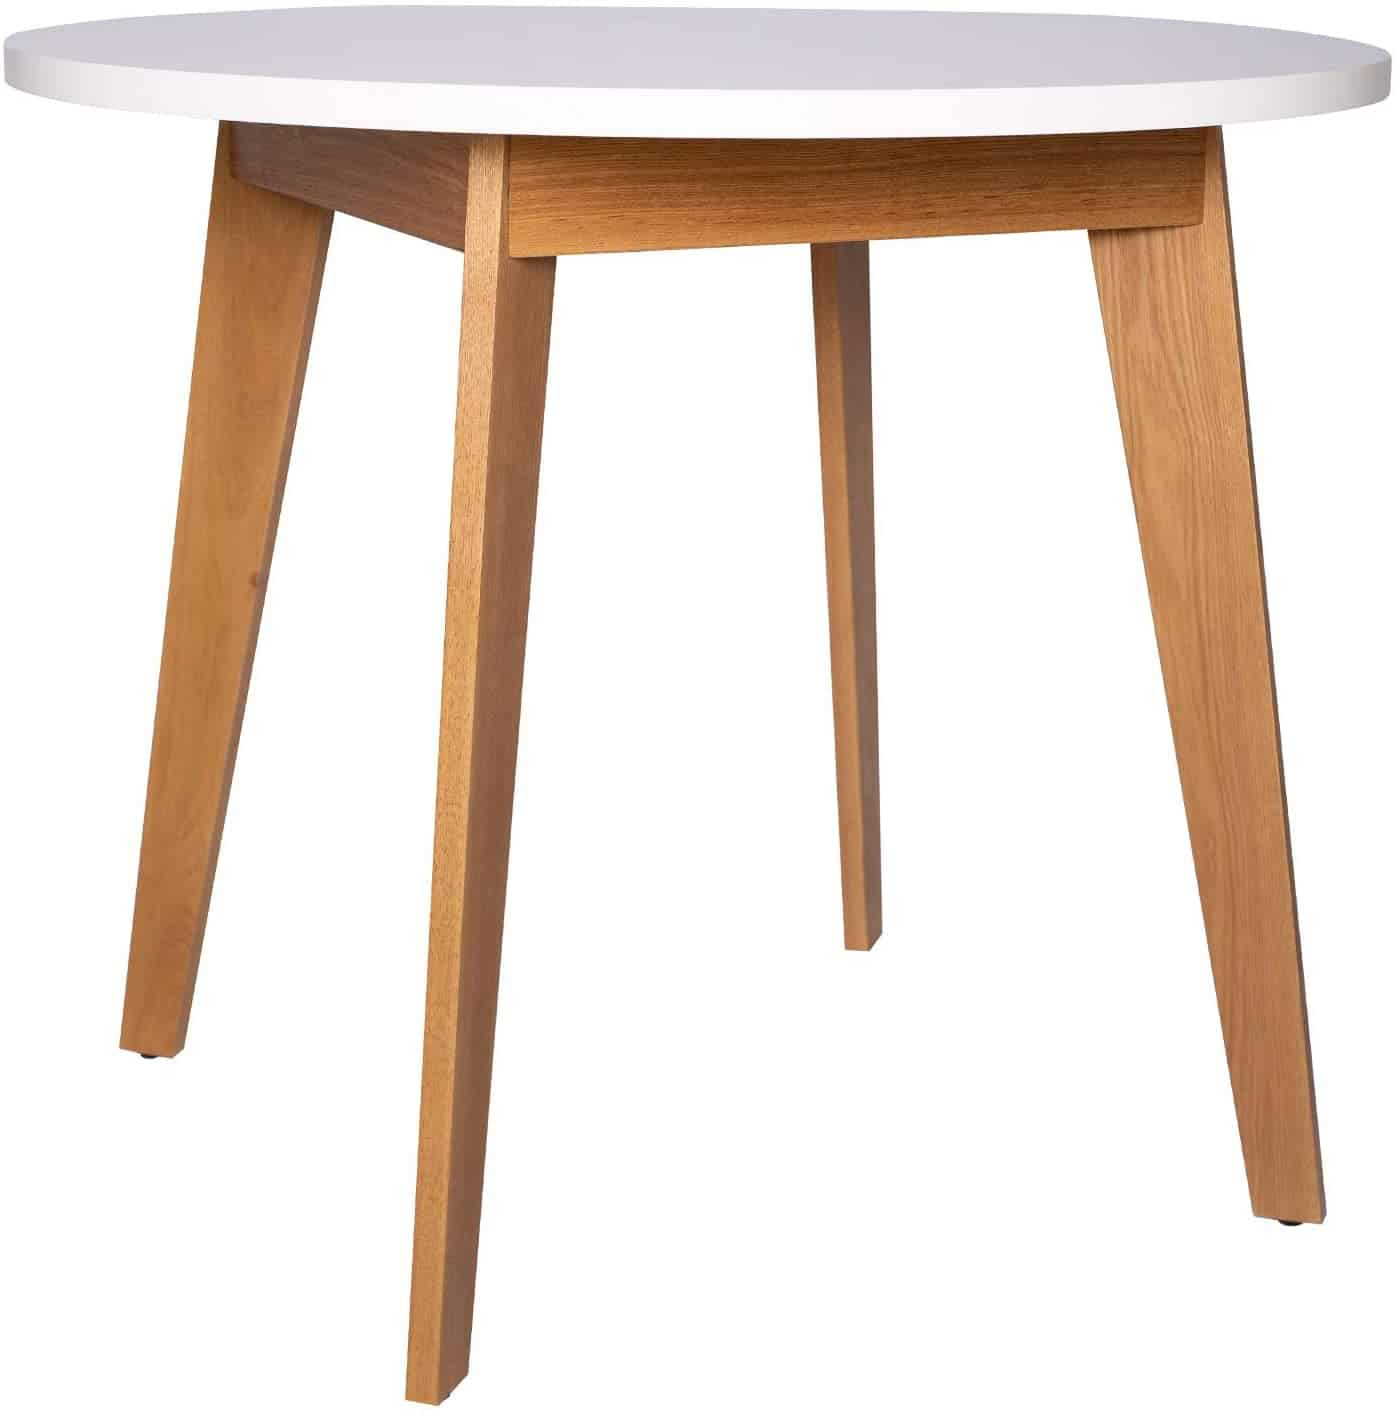 The 10 Best Round Dining Tables (2021 Reviews) For Most Up To Date Akitomo (View 14 of 15)